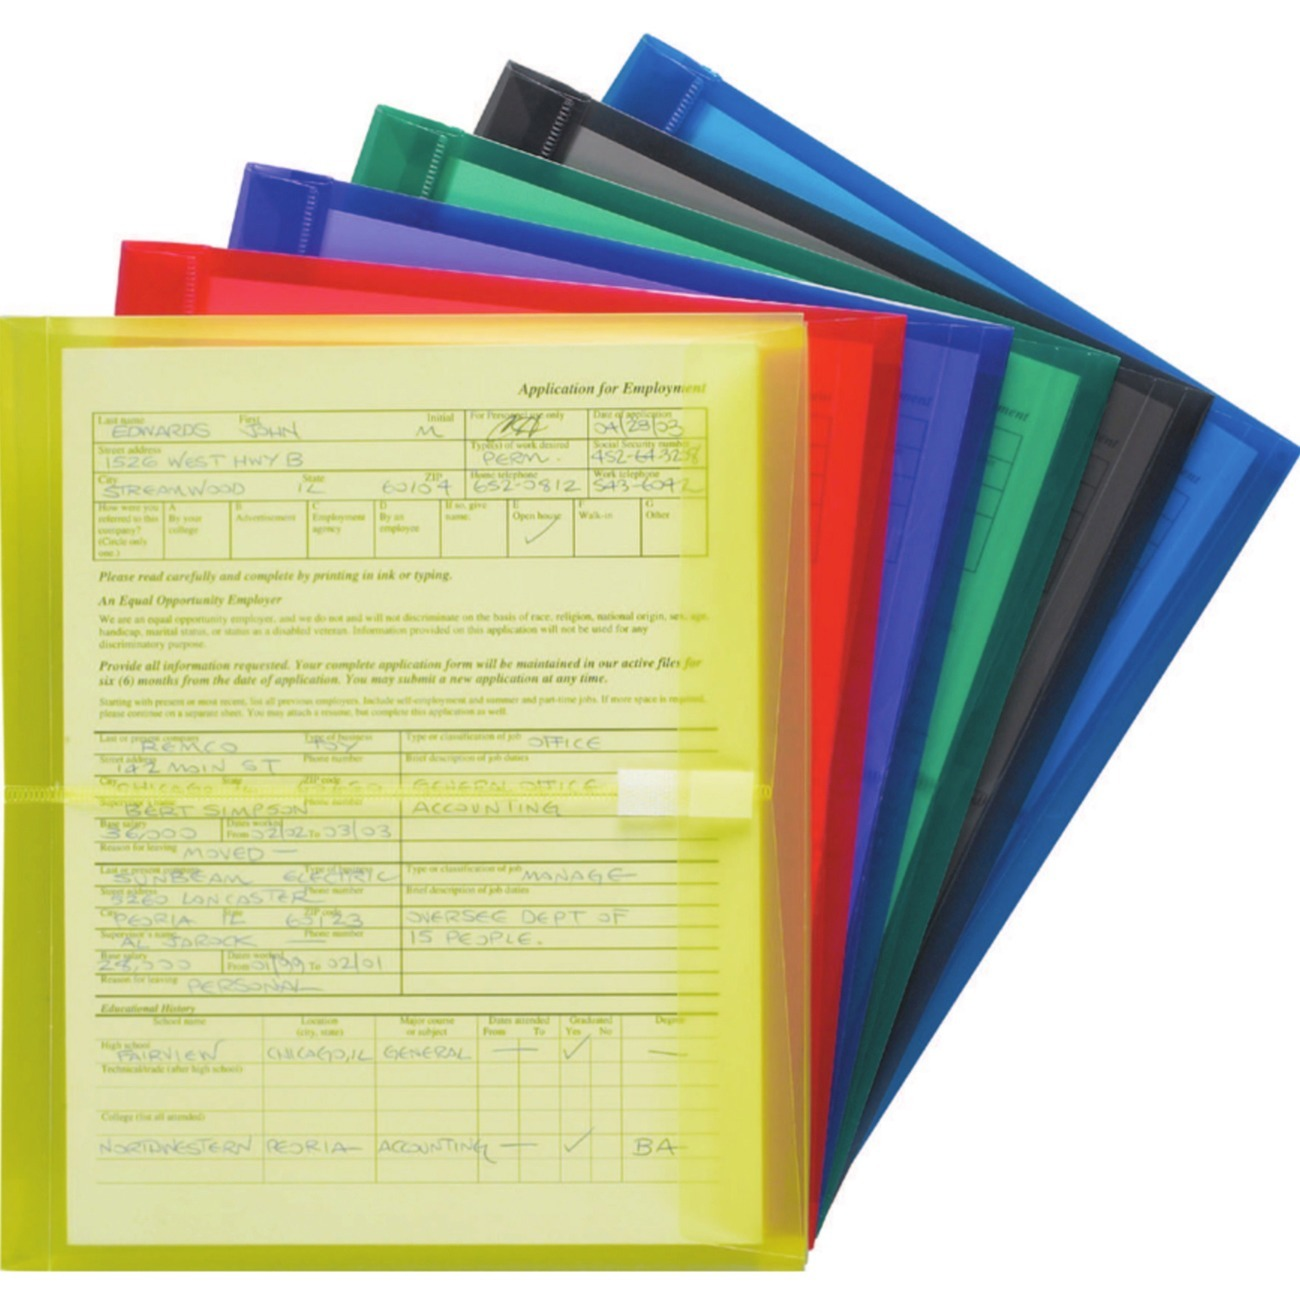 "Smead Envelope, 1-1/4"" Expansion, Hook-and-Loop Closure, Side Load, Letter Size, Assorted Colors, 6 per Pack (89669)"